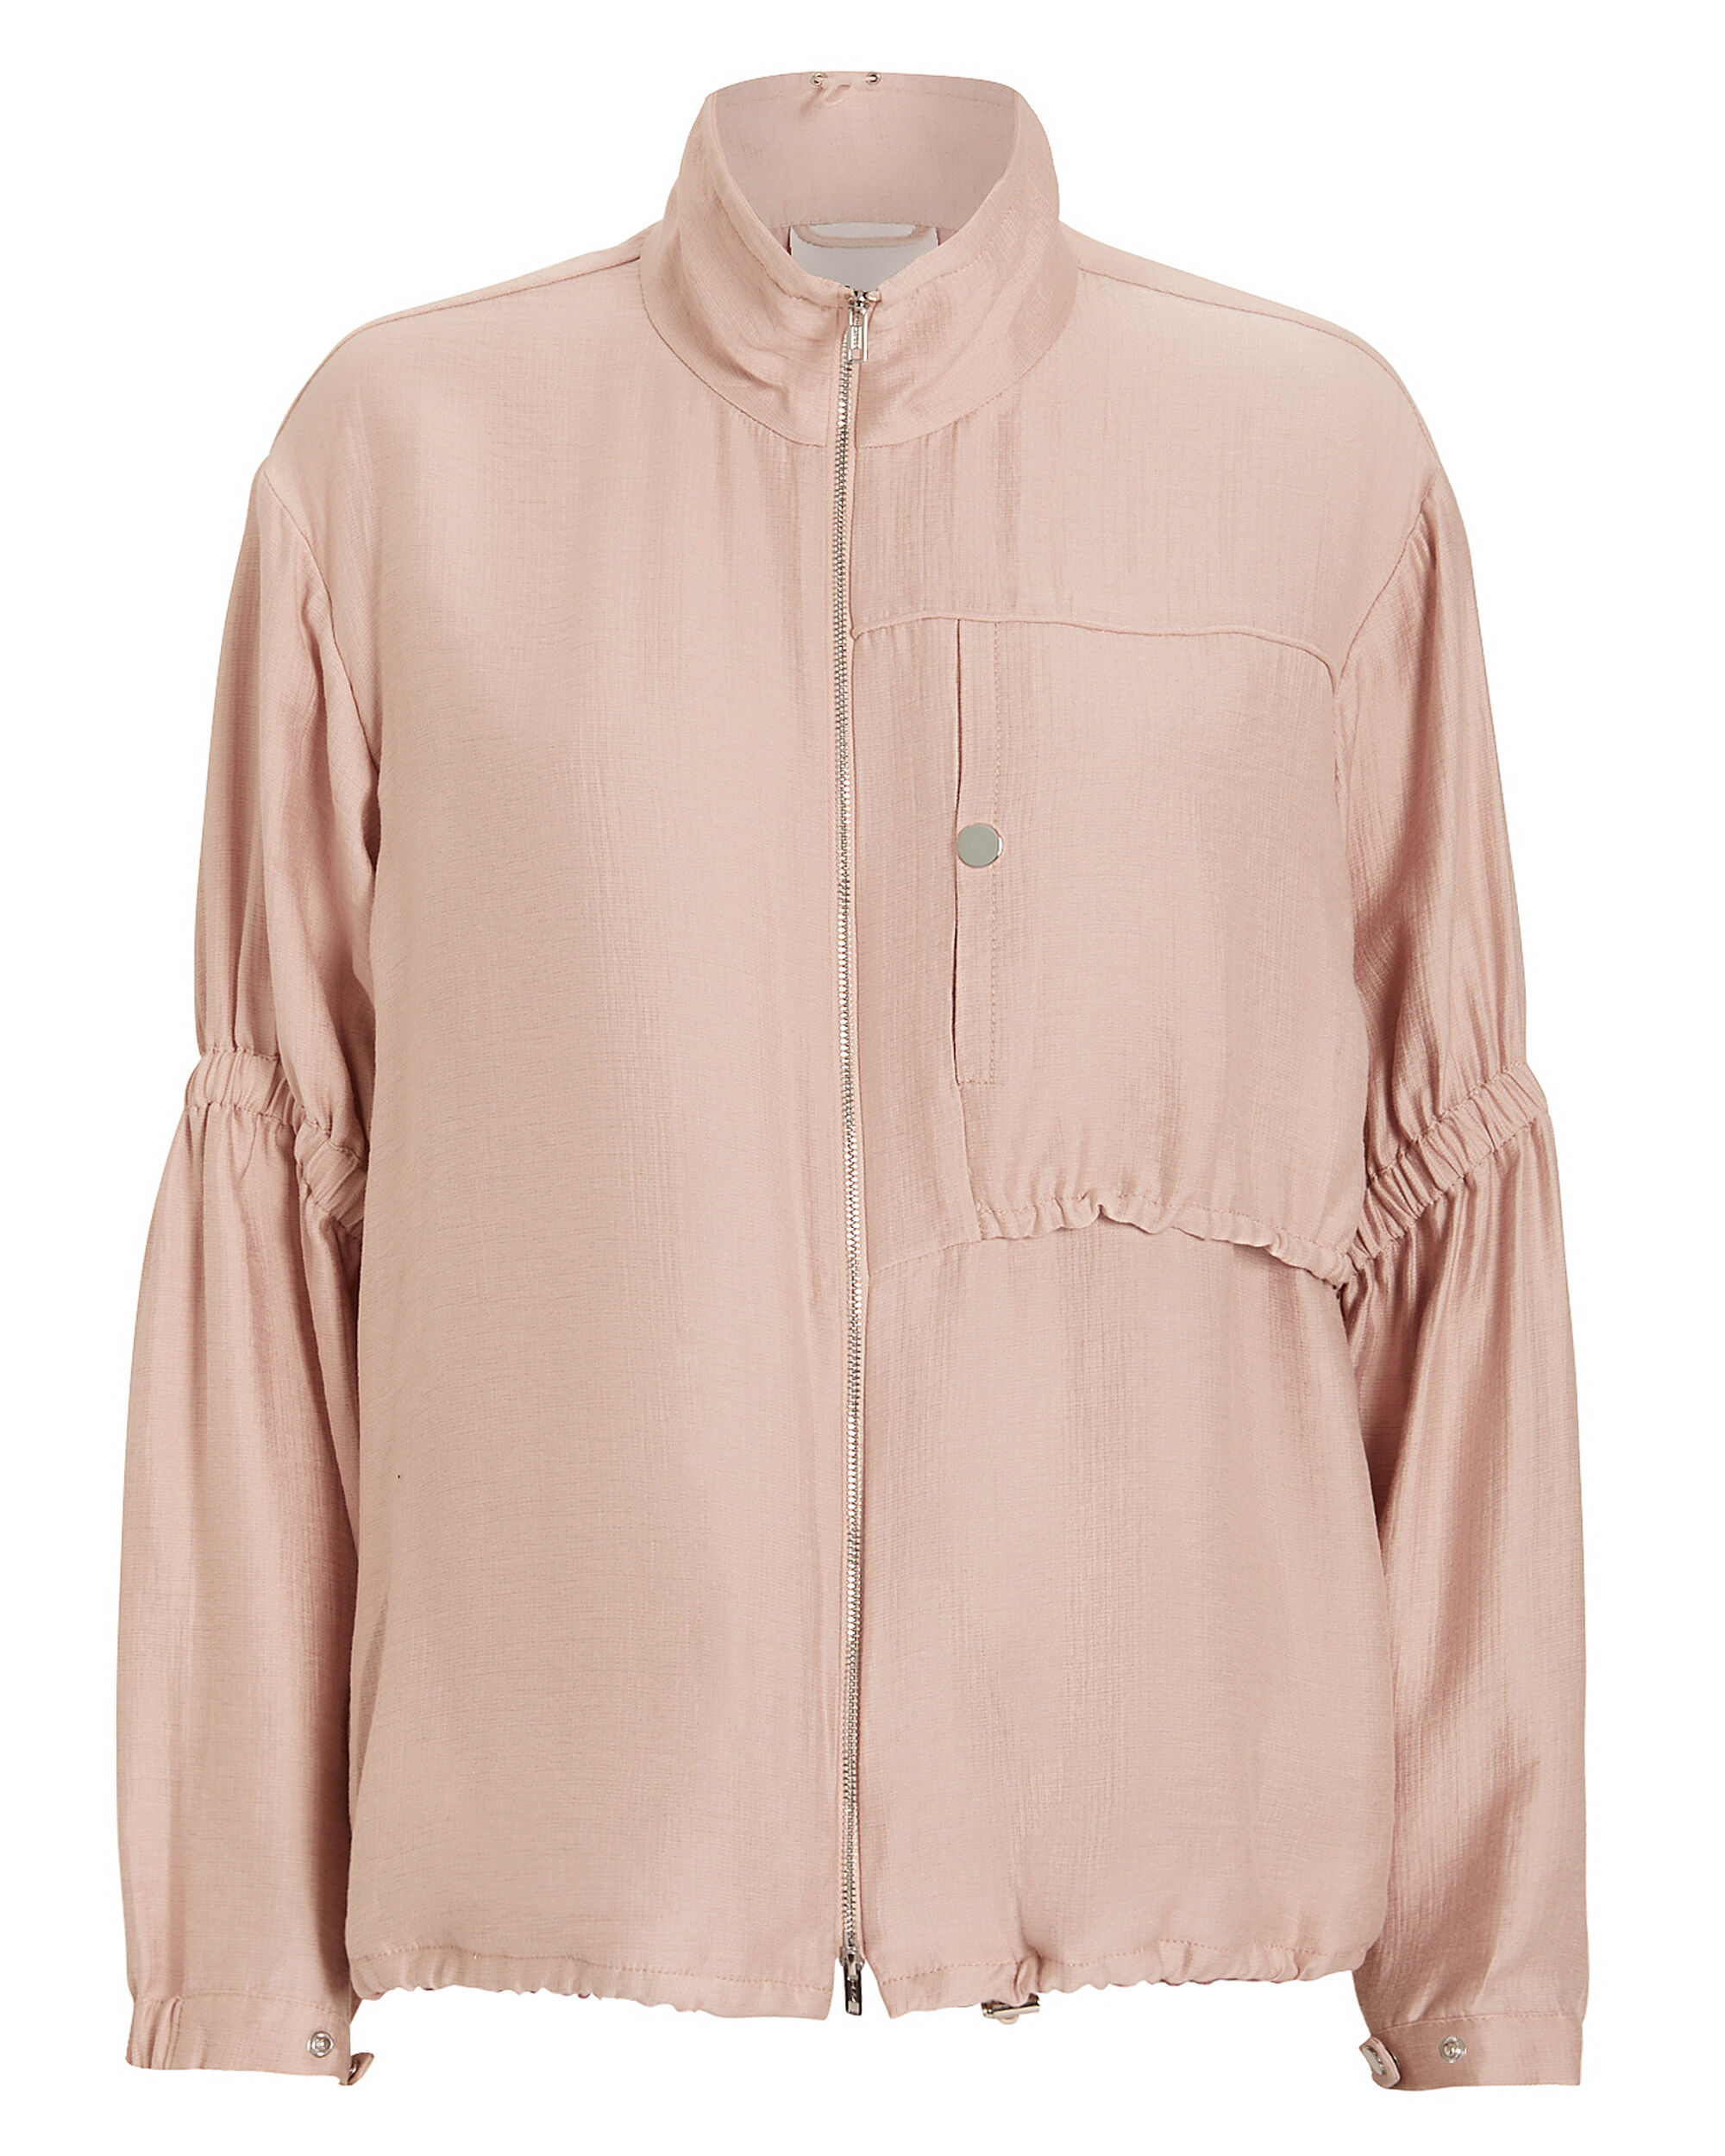 Zip-Up Anorak With Cinched Sleeves, BLUSH, hi-res